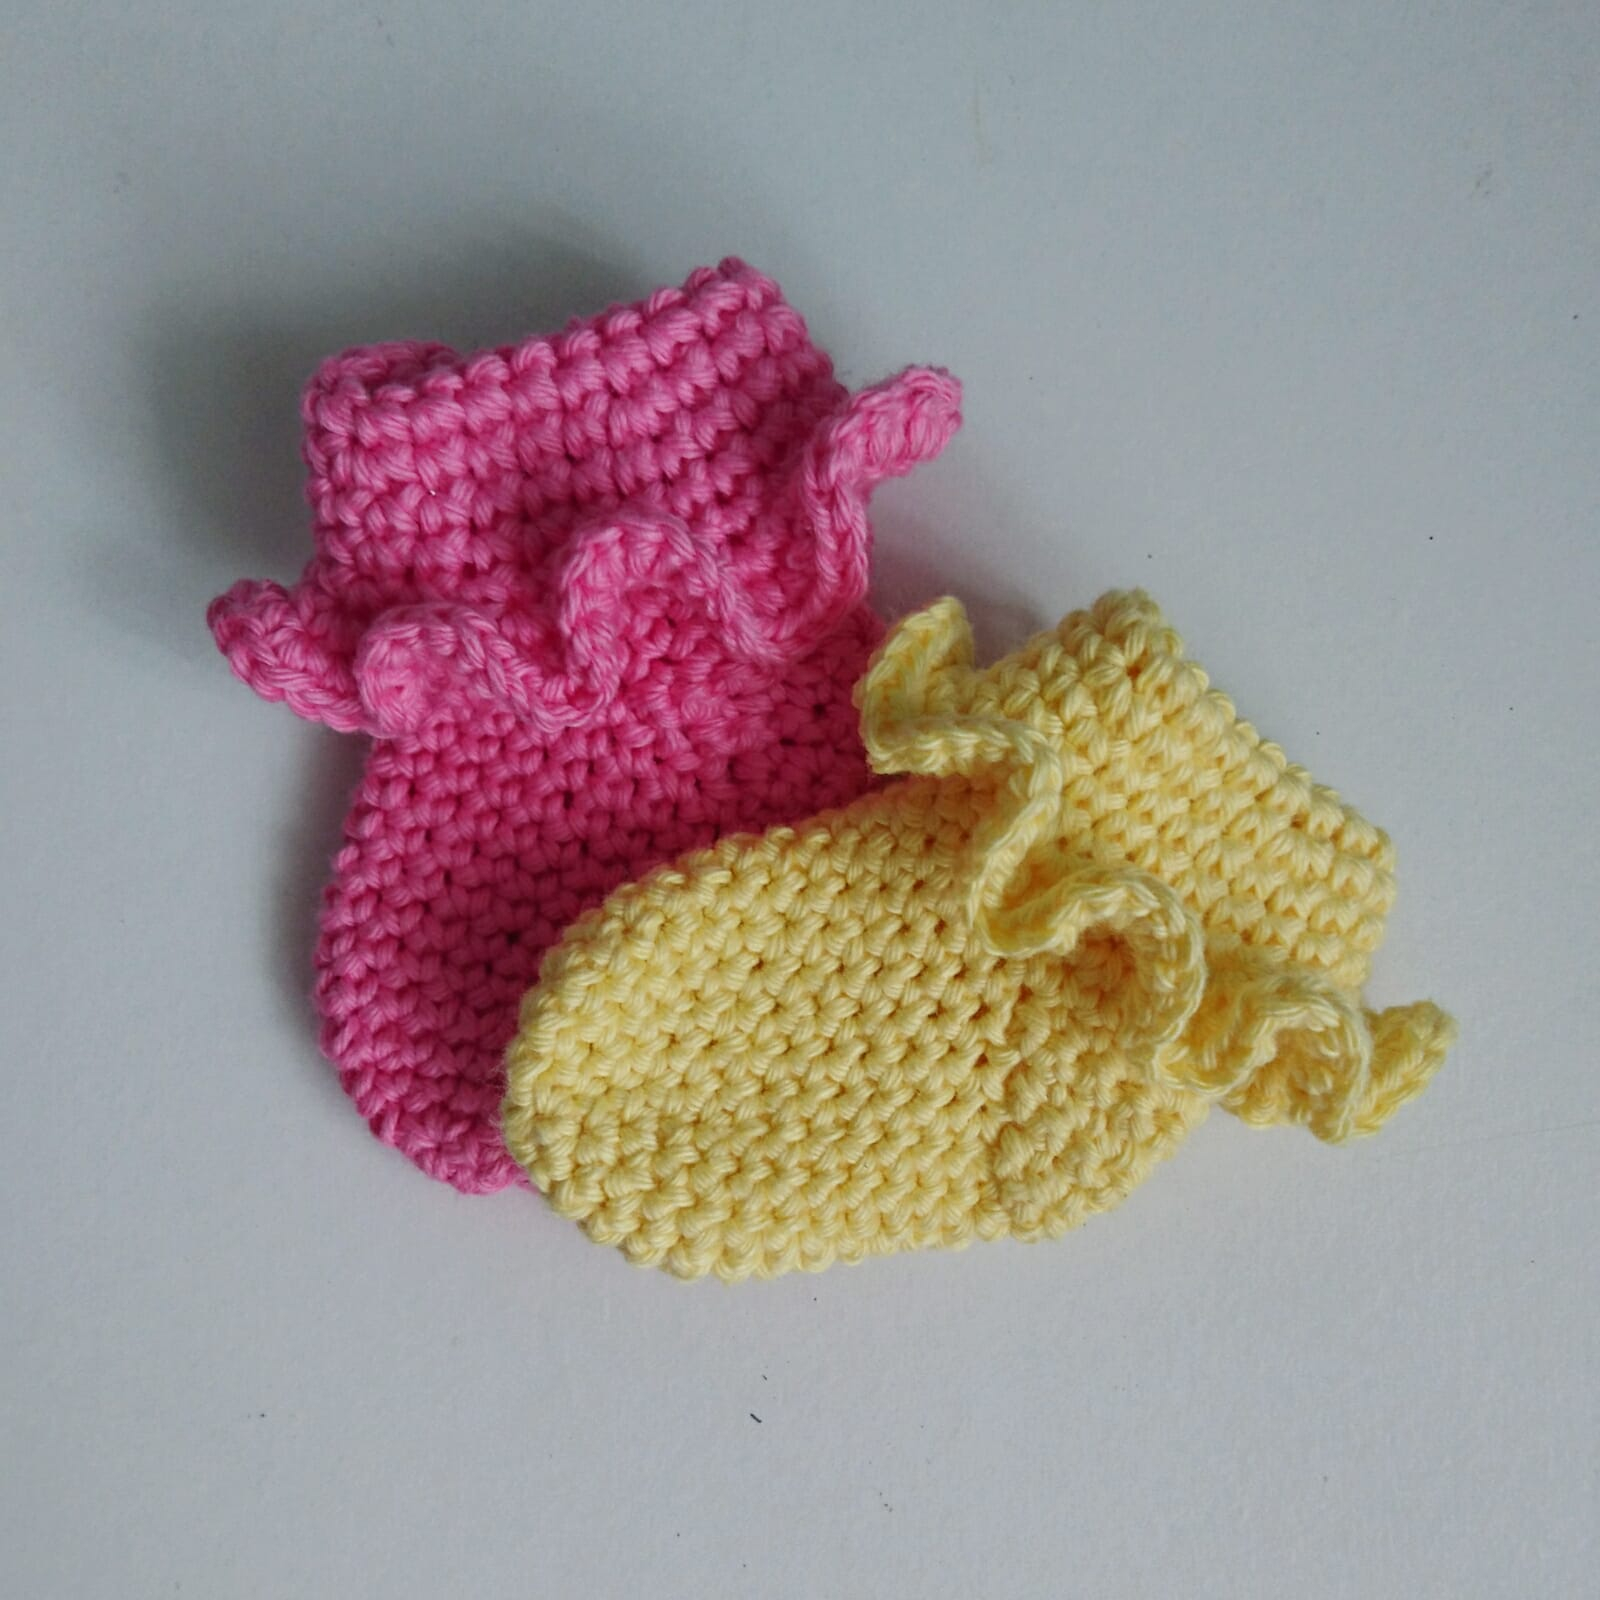 Free Crochet Patterns Newest Crochet Frilled Newborn Socks Free Crochet Pattern The Crochet Blog